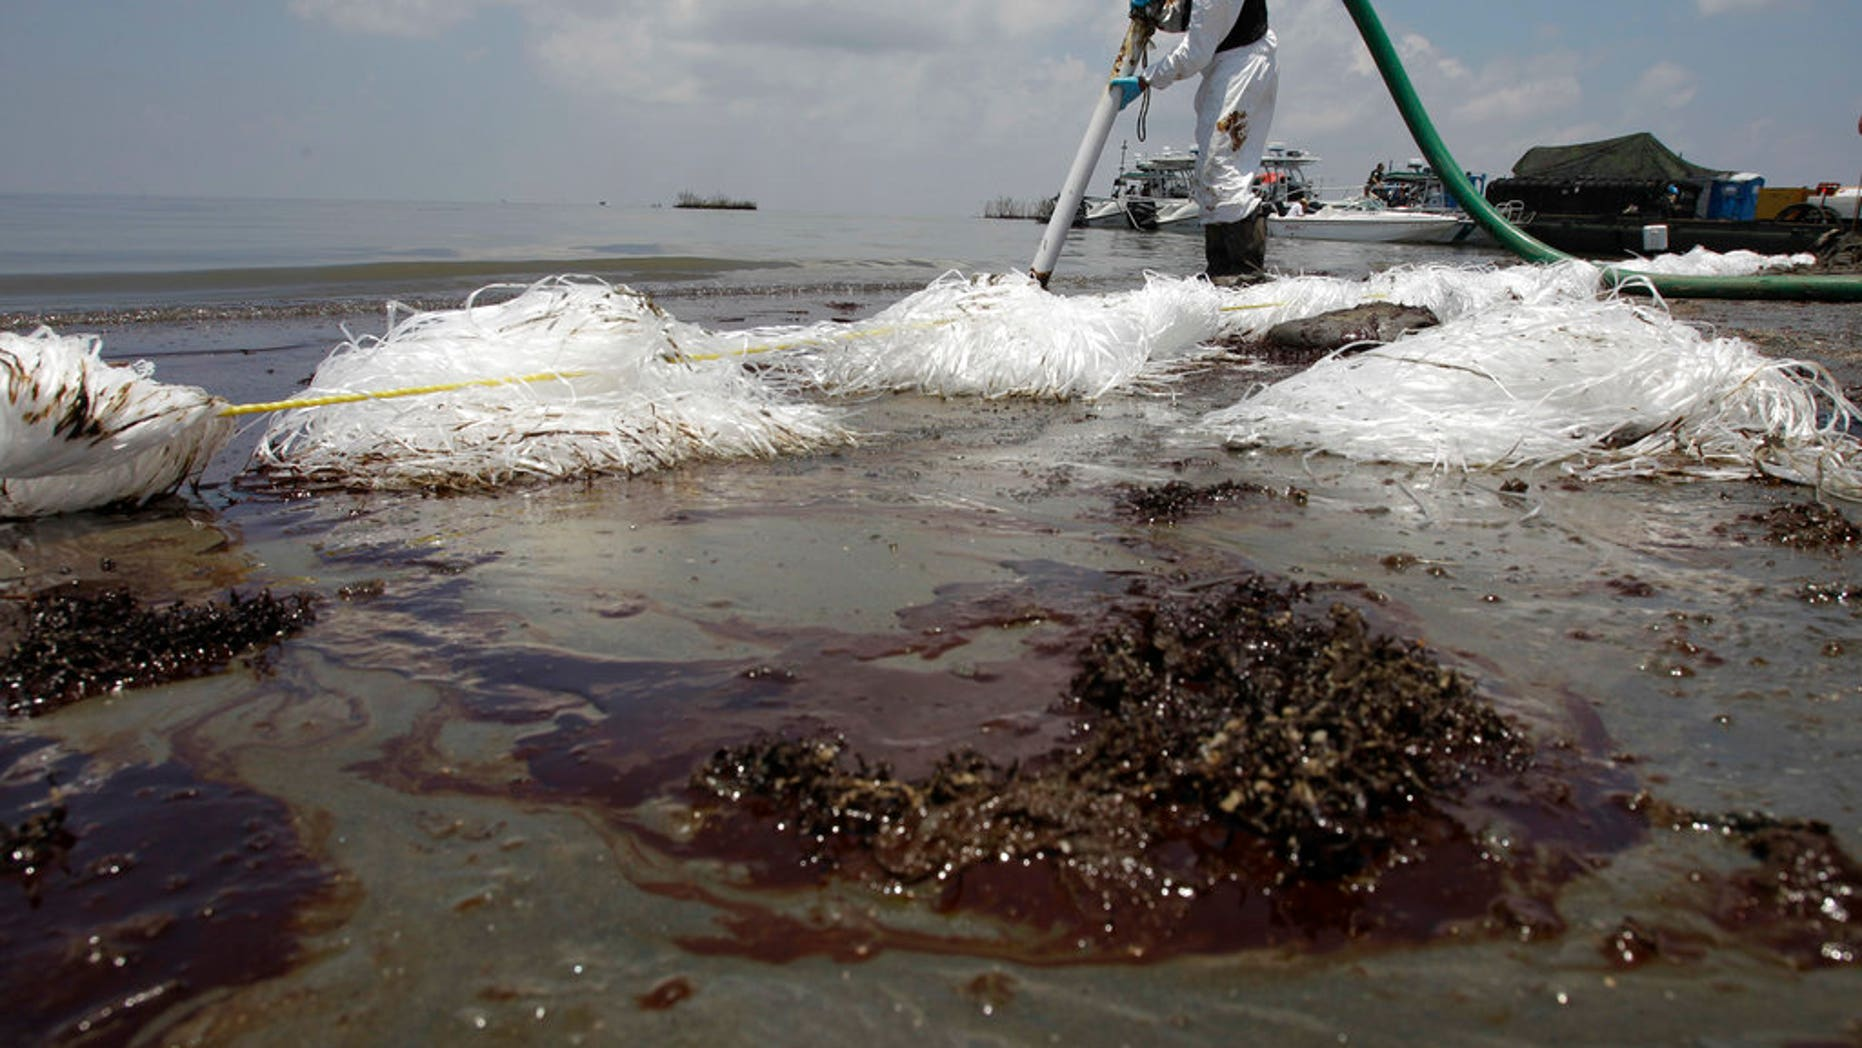 A worker uses a suction hose to remove oil washed ashore from the Deepwater Horizon spill, in Belle Terre, La., June 9, 2010.